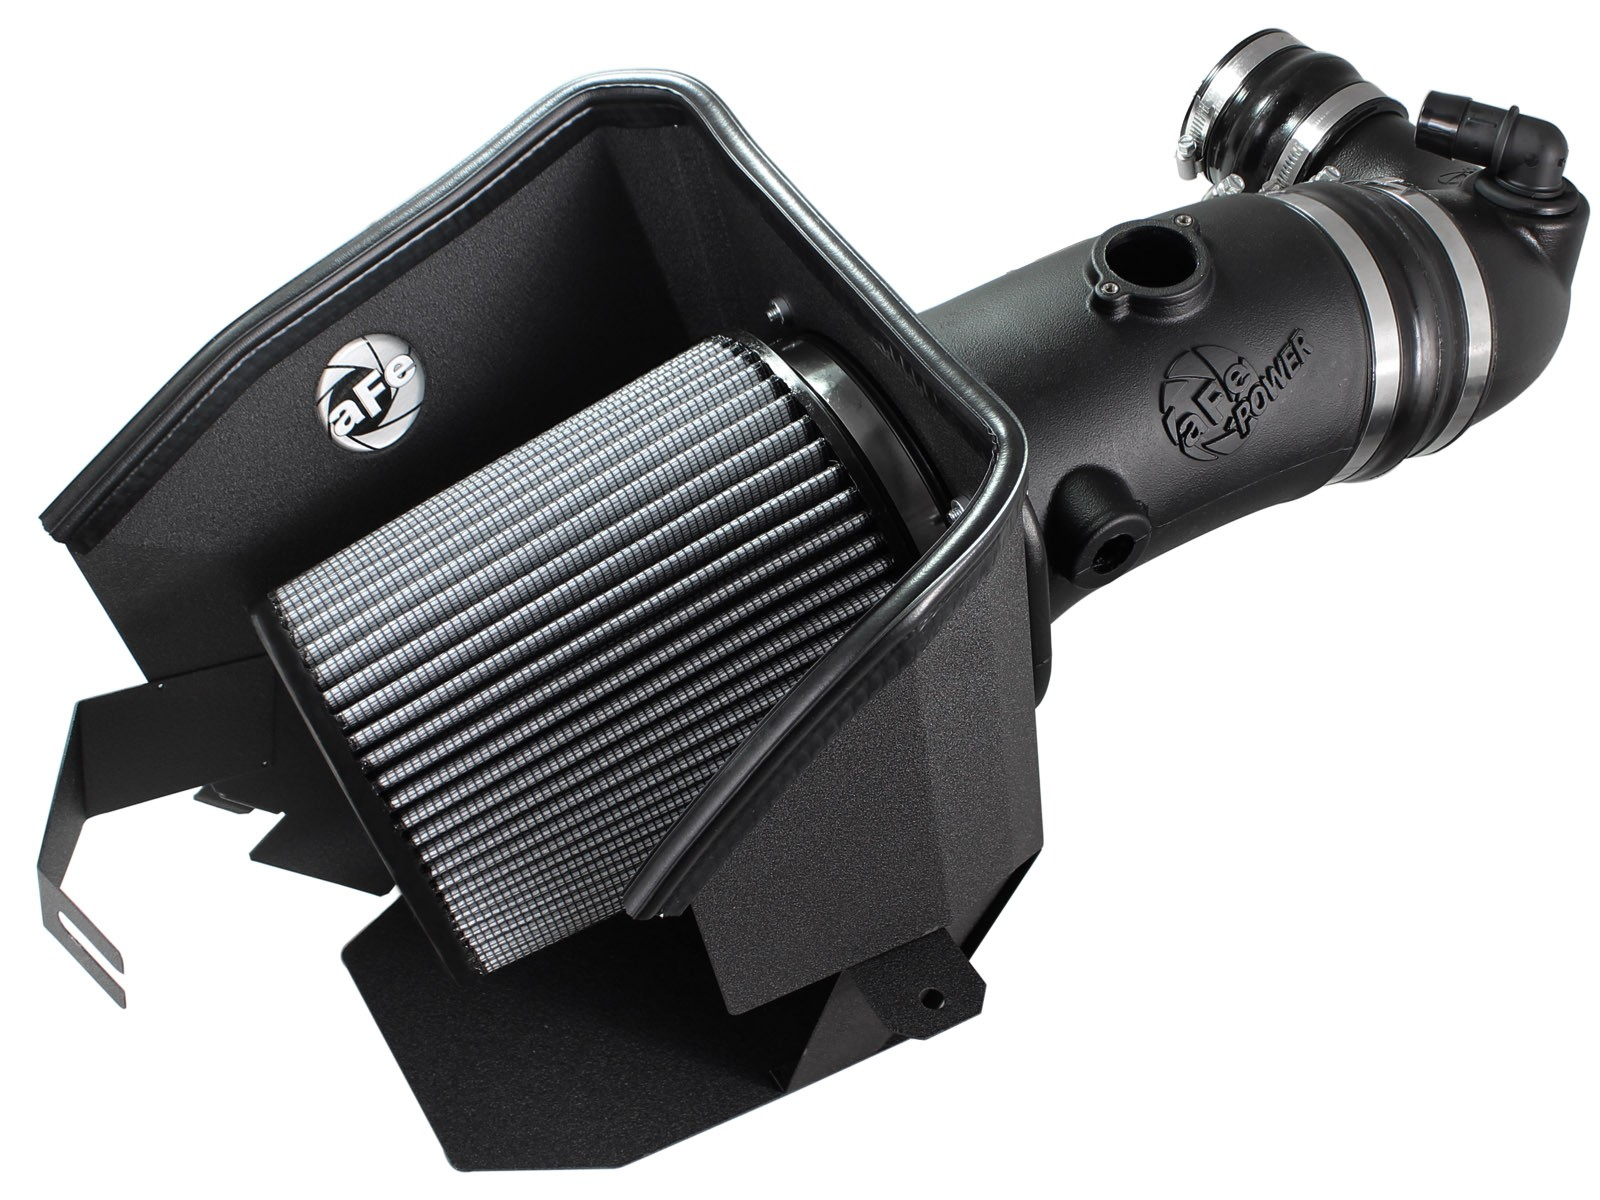 aFe POWER 51-41262 Magnum FORCE Stage-2 Pro DRY S Cold Air Intake System